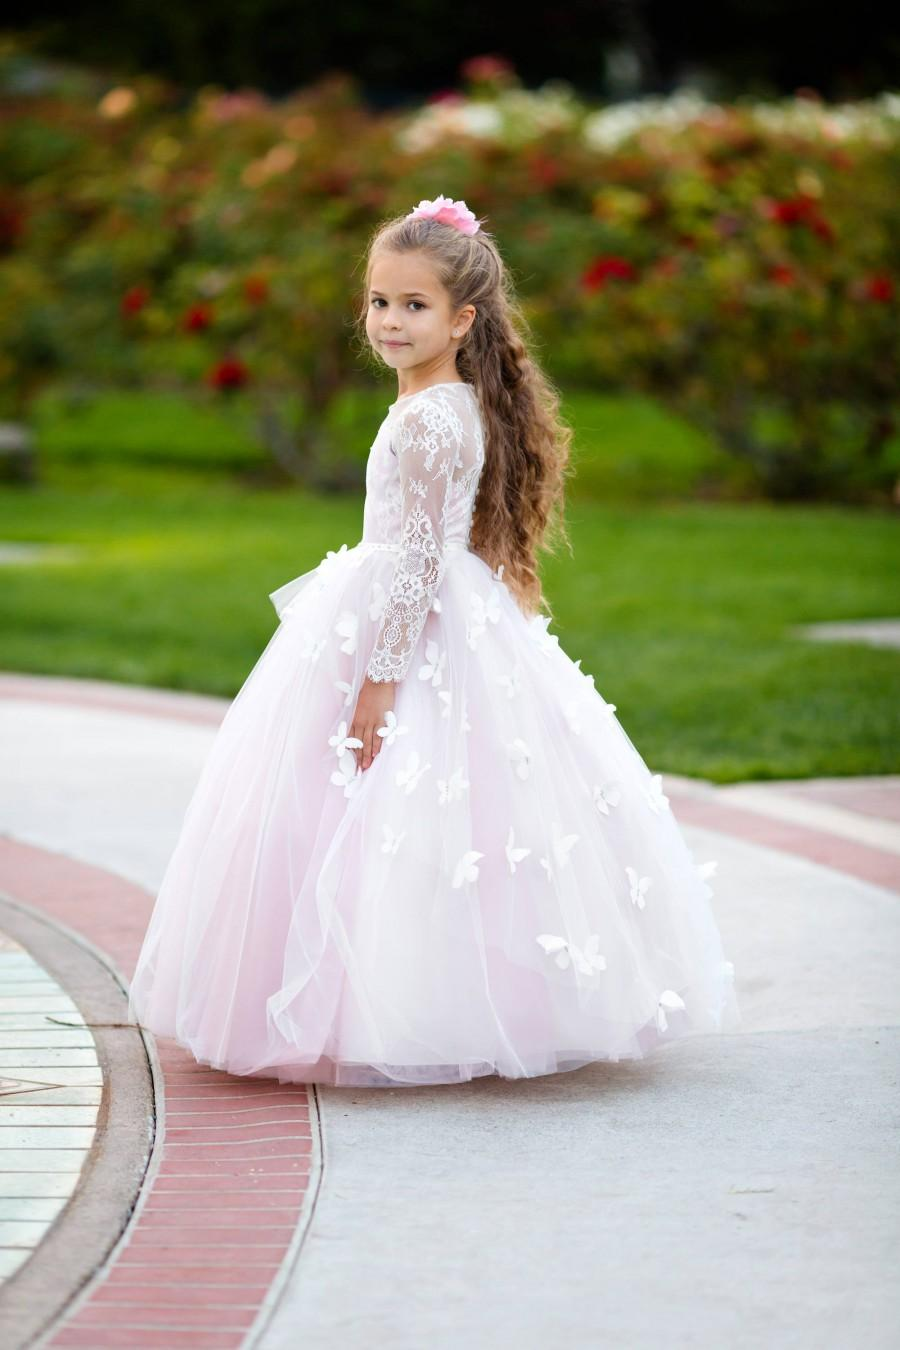 زفاف - Pink flower girl dress long sleeve Lace girls wedding party 1st Birthday Baby Toddler Princess Special occasion